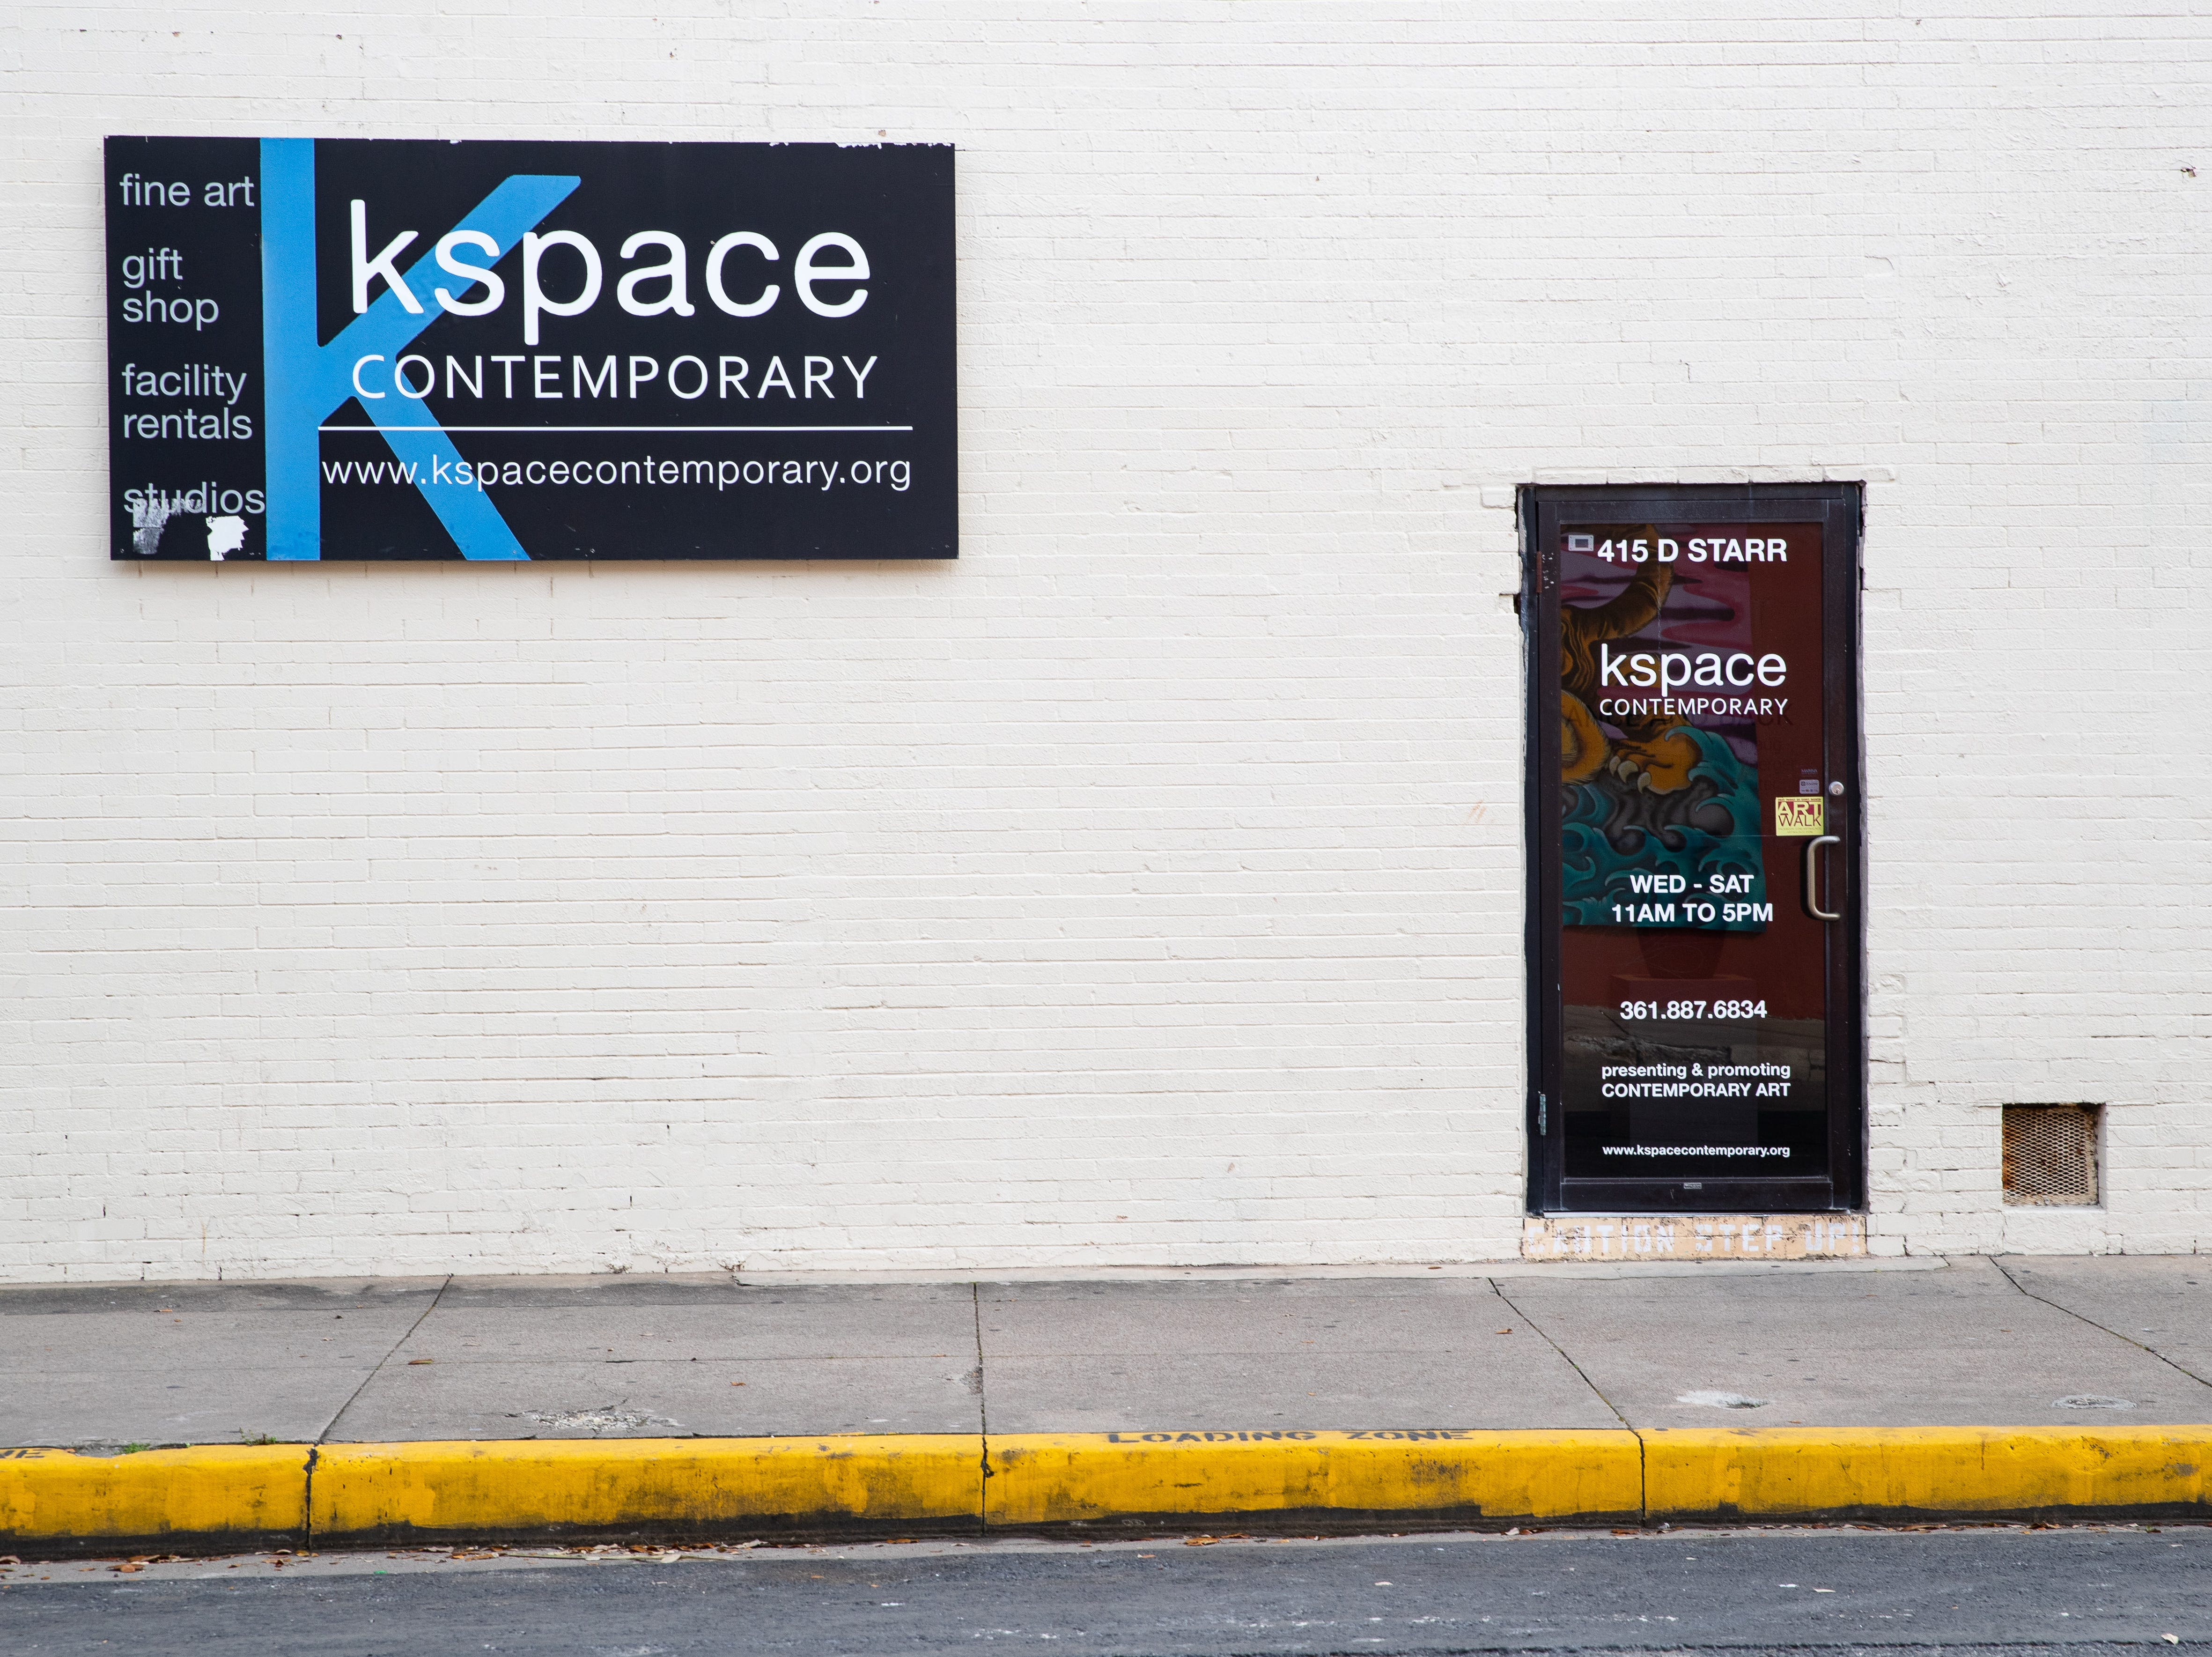 Kspace Contemporary's located at 415 Starr Street.